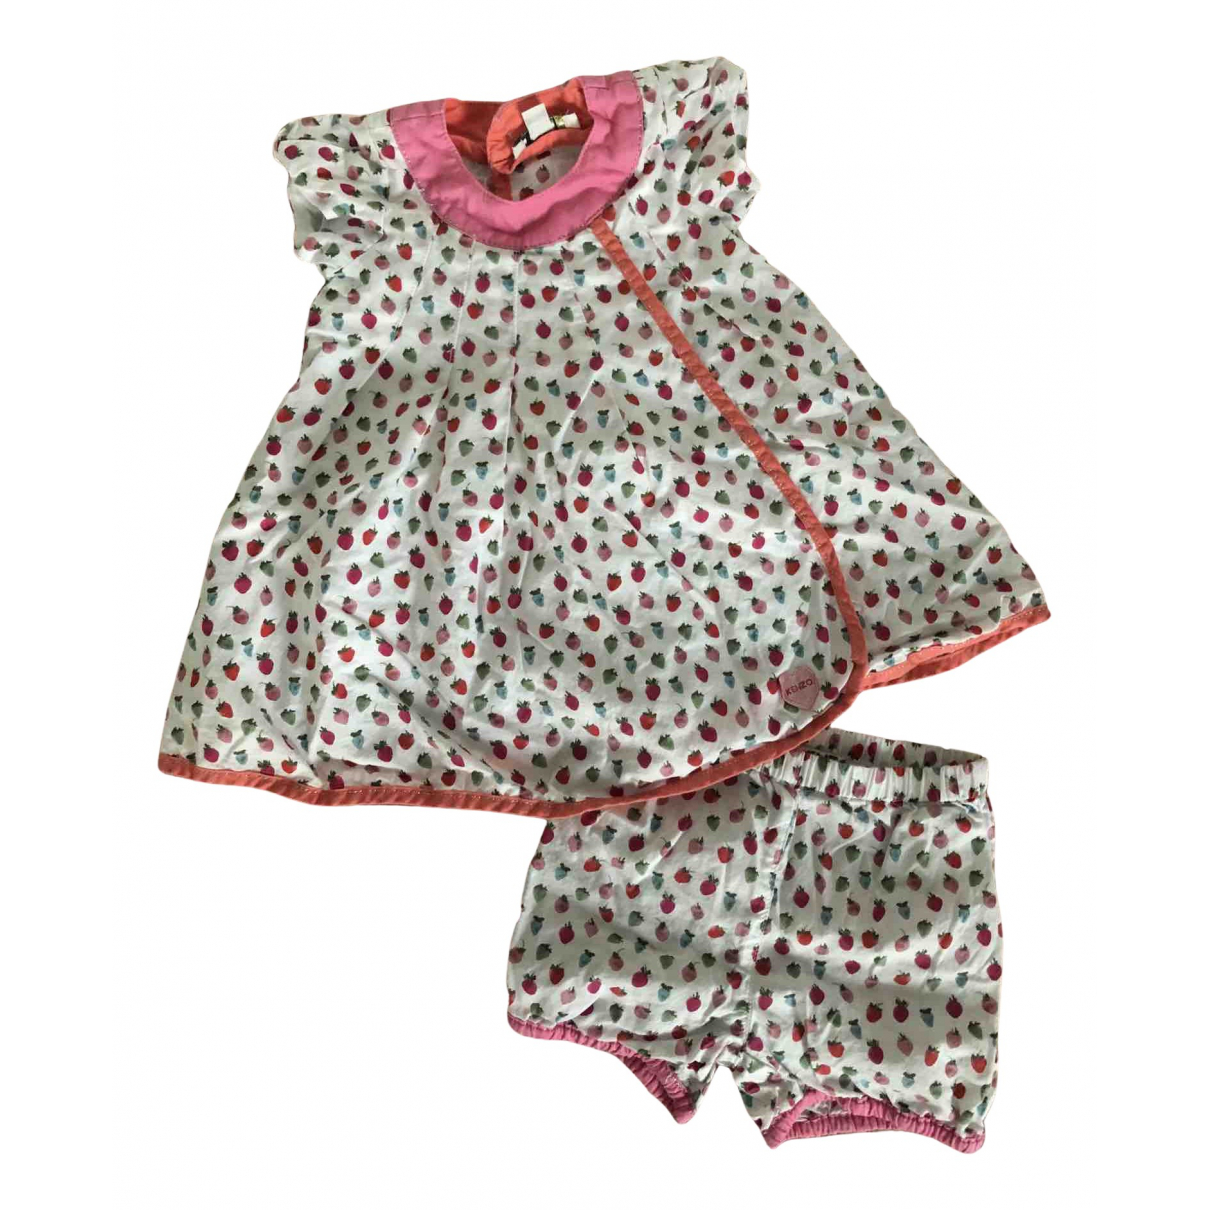 Kenzo N White Cotton Outfits for Kids 3 months - up to 60cm FR